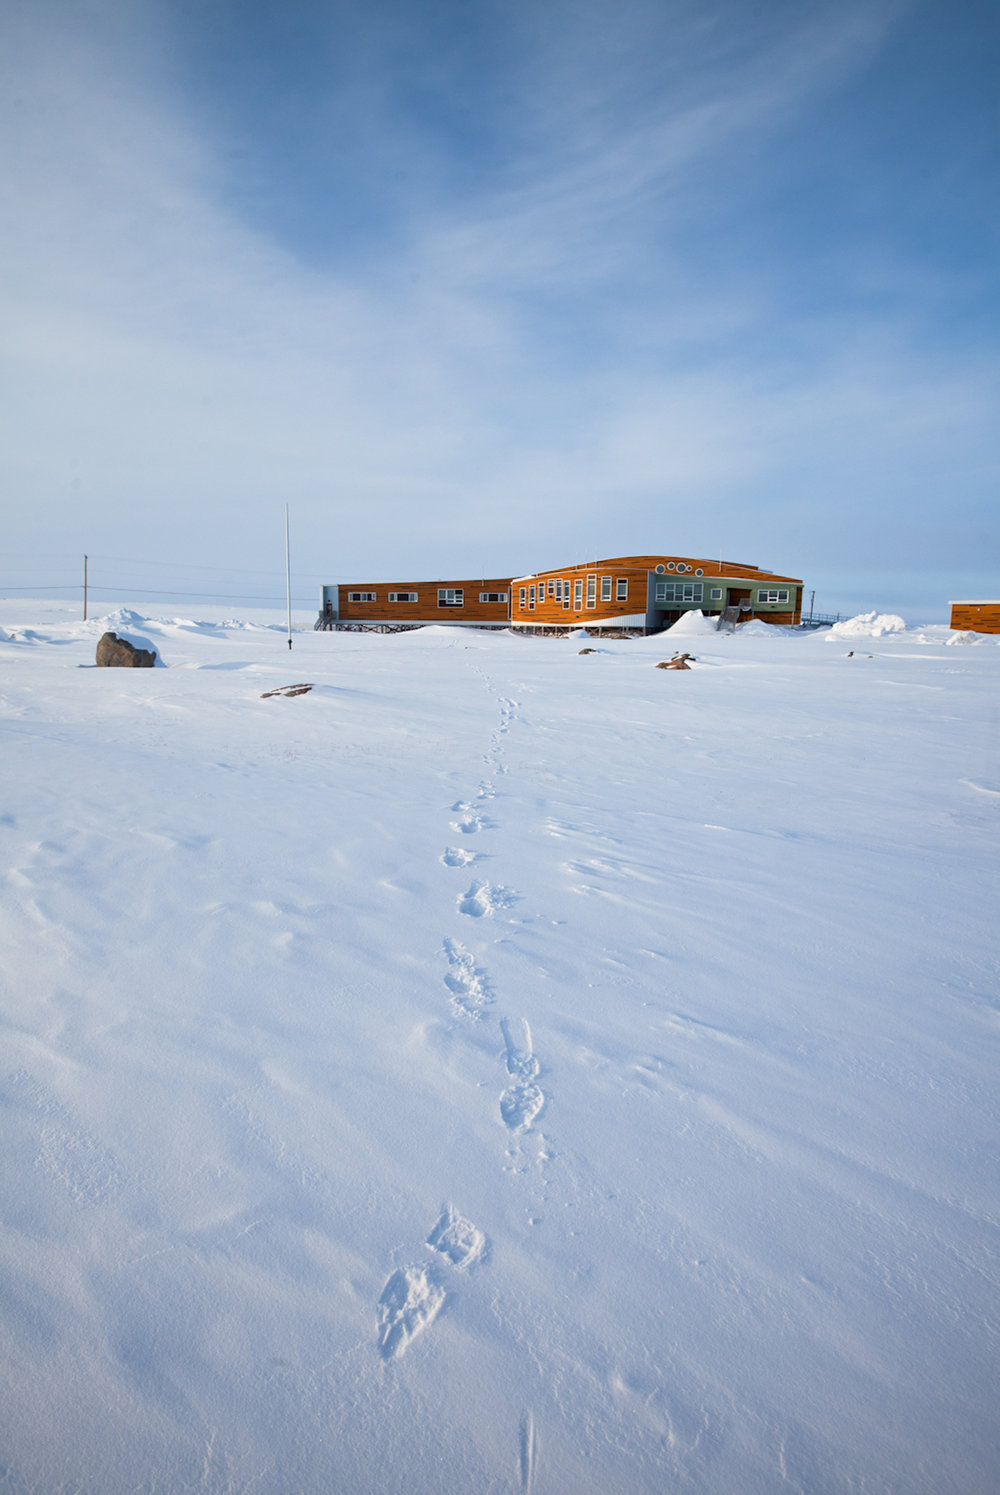 Piqqusilirivvik Inuuit Cultural Learning Facility, Clyde River, Nunavut. Harriet Burdett-Moulton for Santec Architects, 2012. Photograph by Dave Brosha